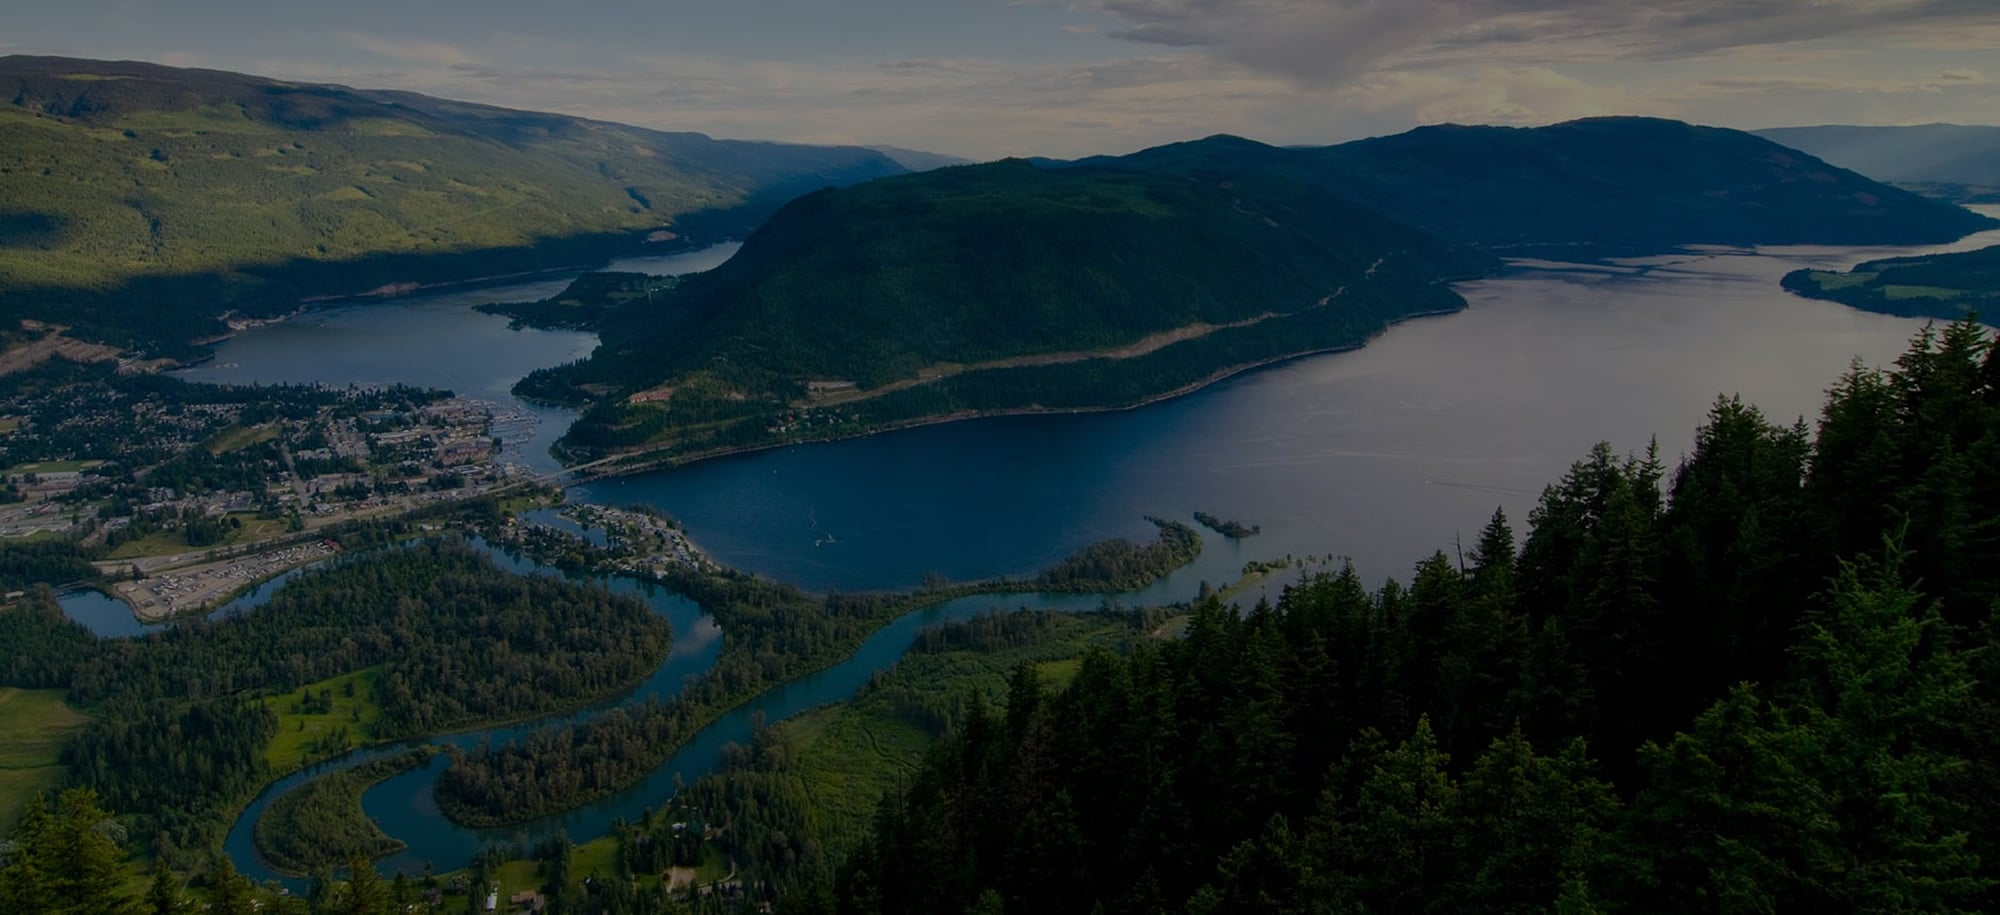 Homes for sale in the Okanagan, featuring Shuswap Lake